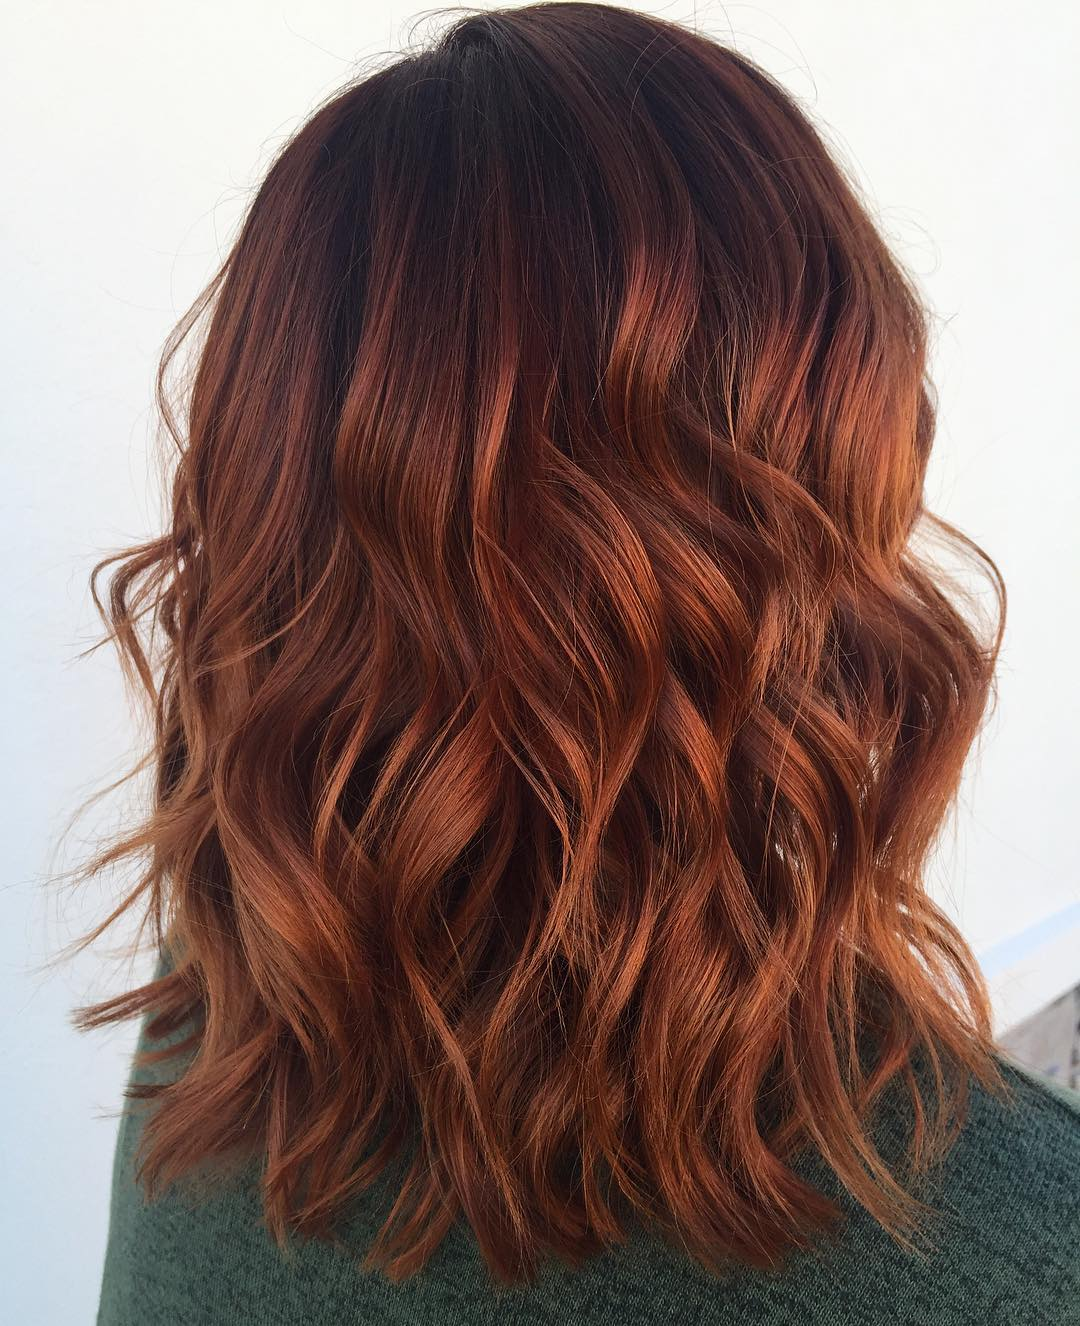 60 Auburn Hair Colors to Emphasize Your Individuality